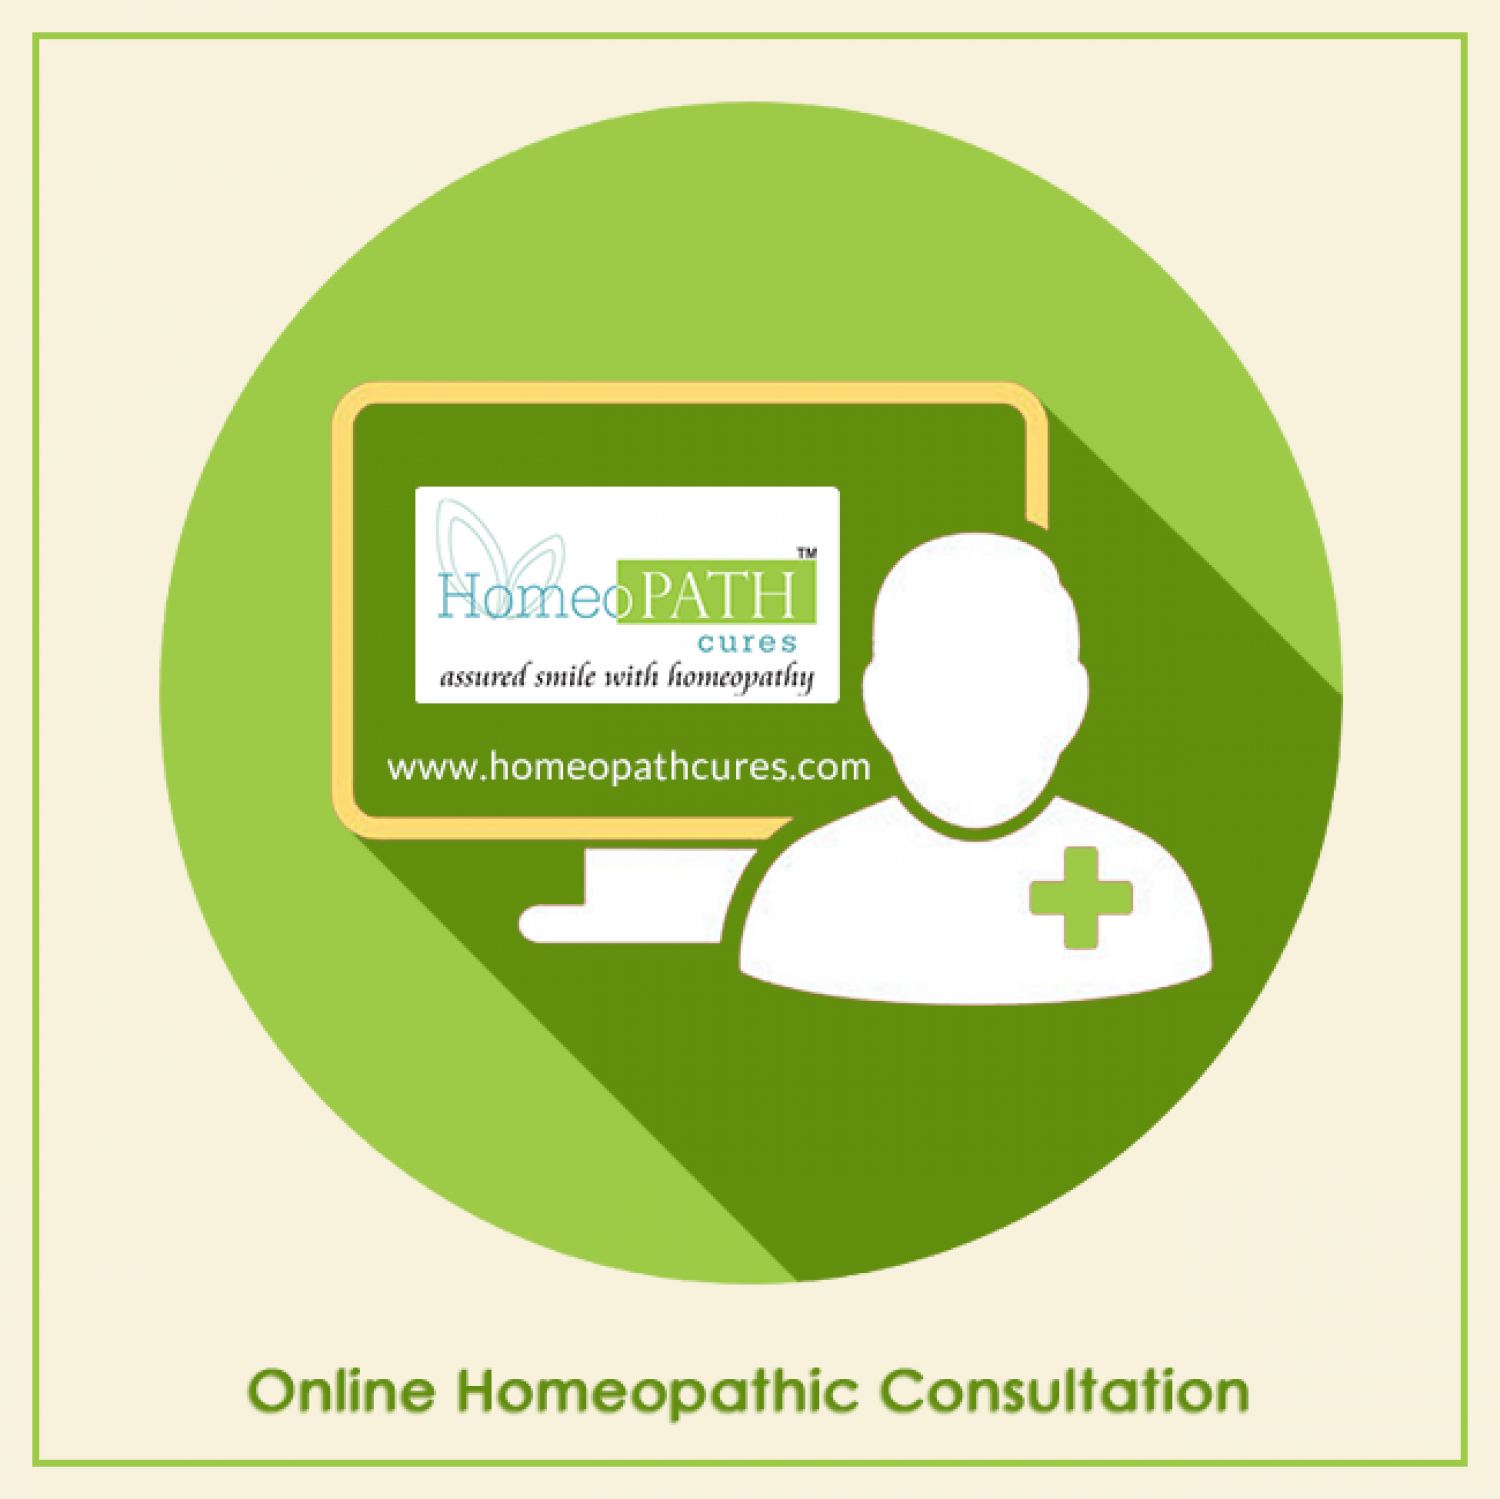 Enjoy The Homeopathic Consultation Online from Any Loacation Infographic